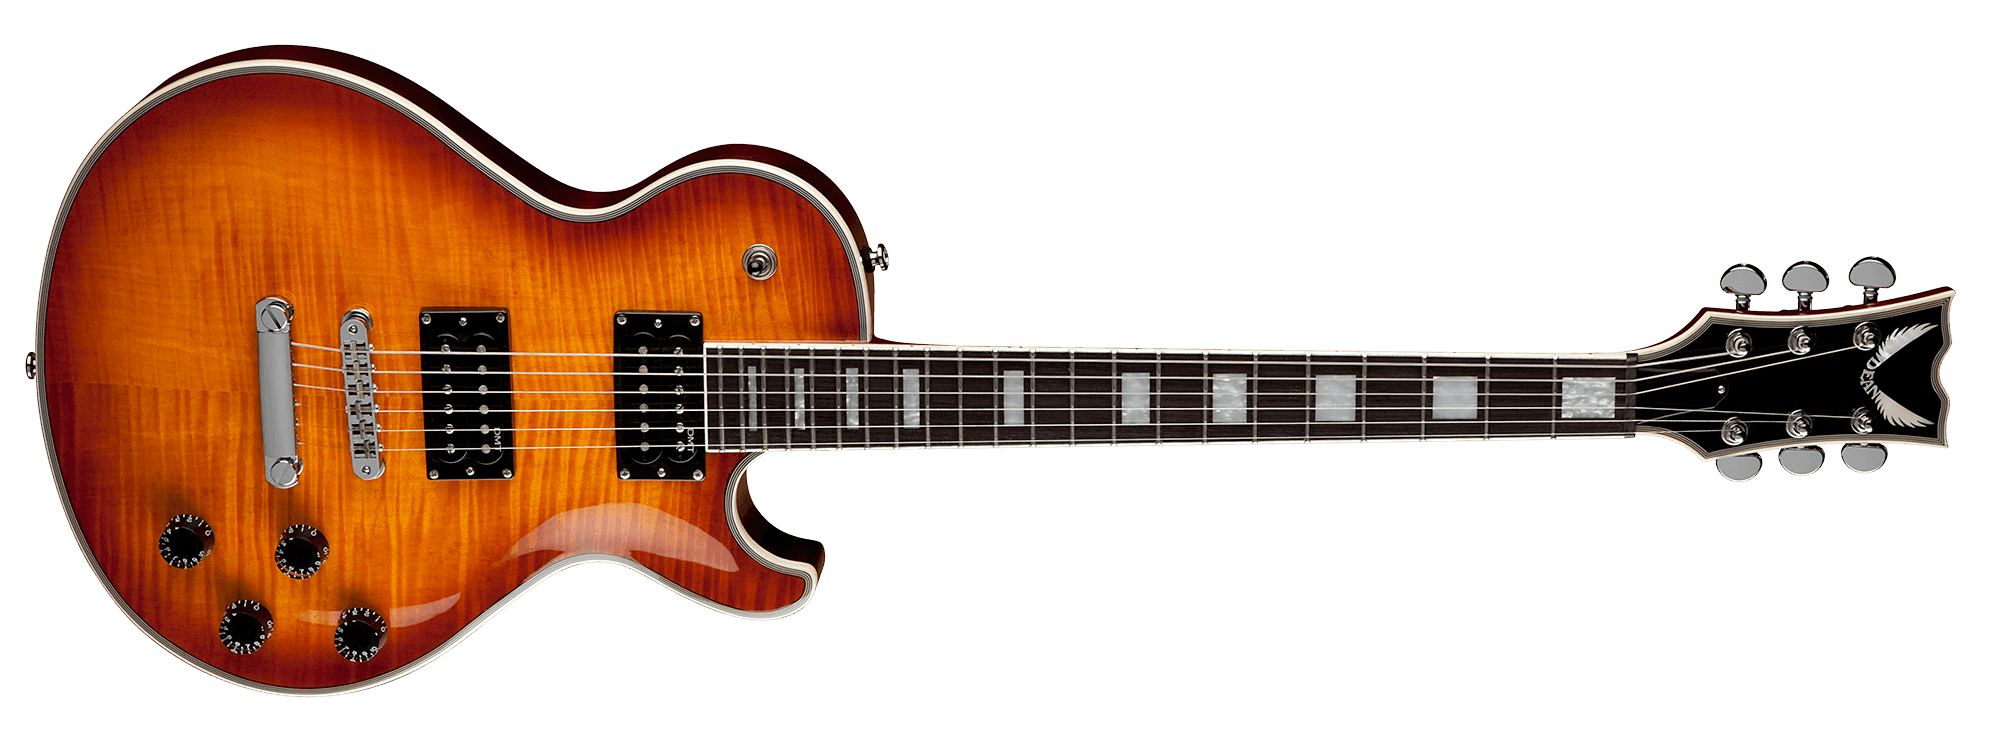 Thoroughbred Deluxe Trans Amber